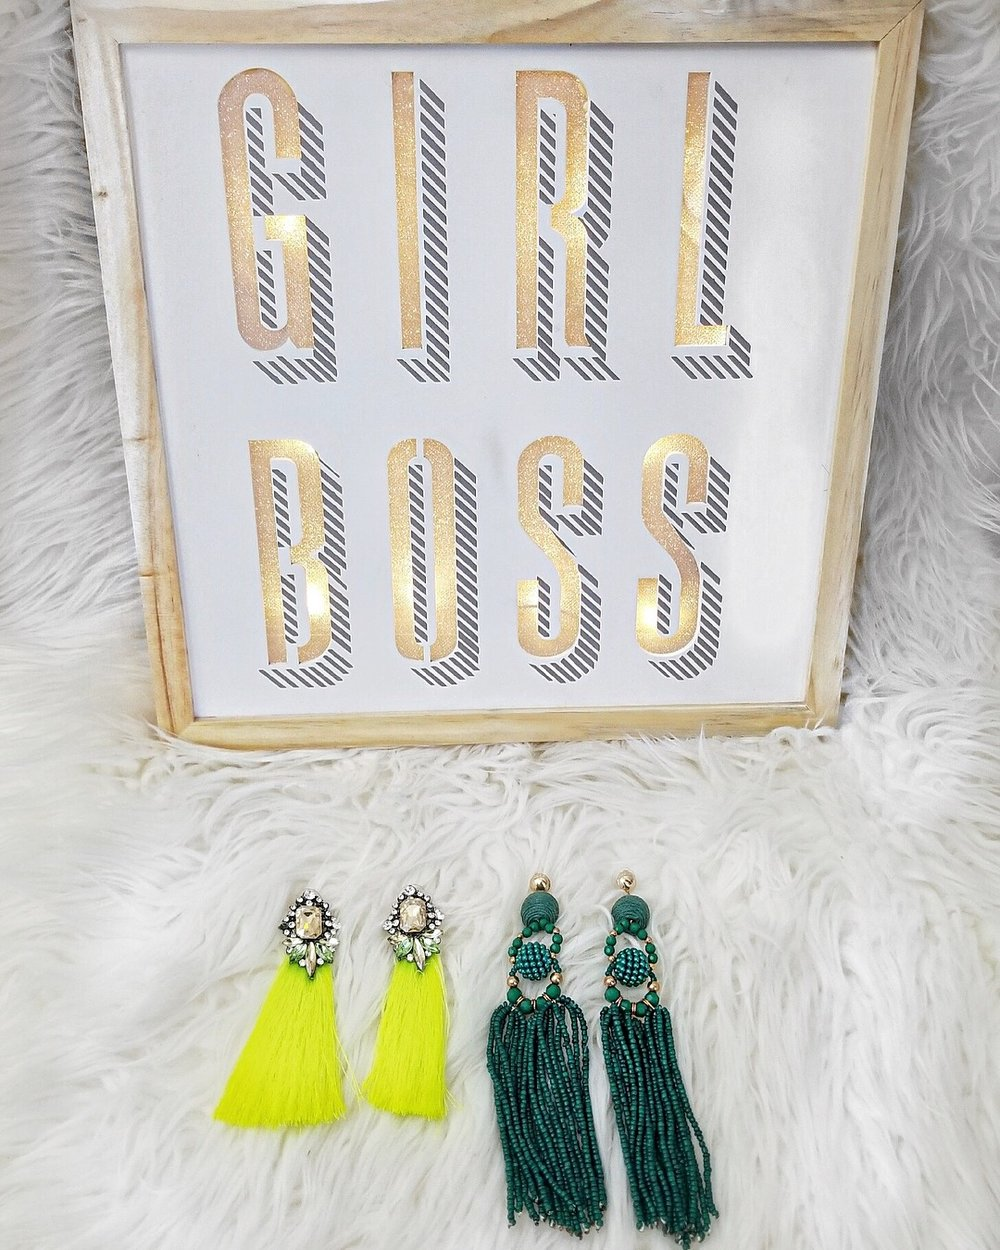 Fashionable-Earrings-That-Make-A-Statement